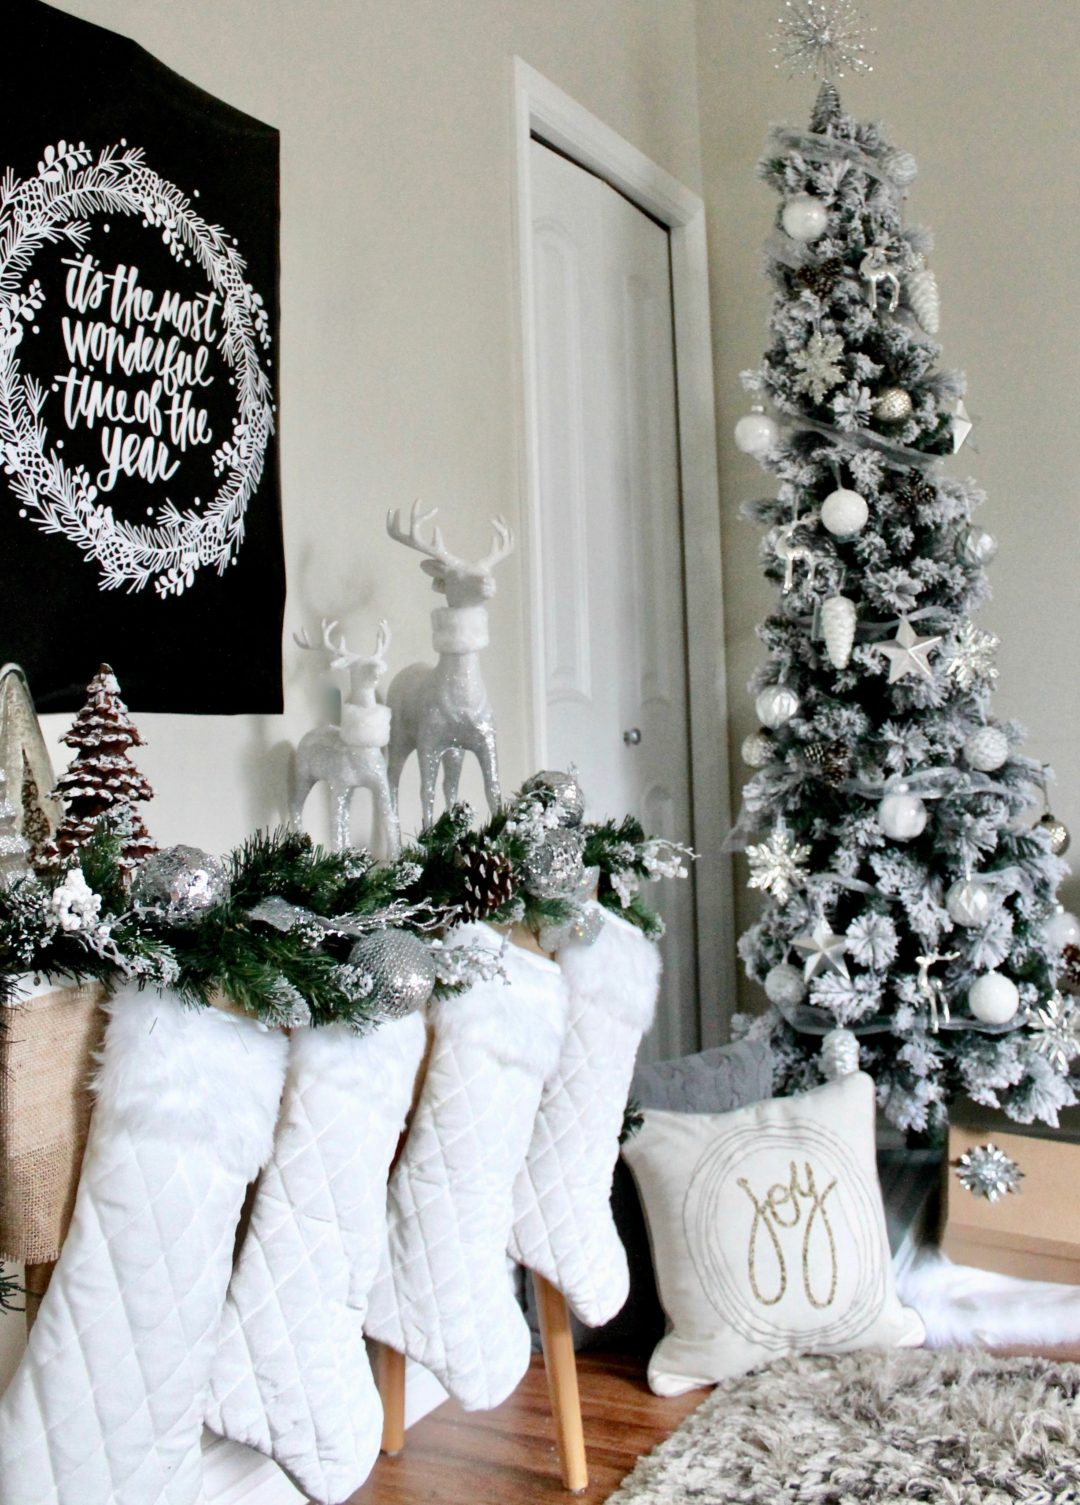 Christmas Decor | Cream and Silver Christmas Decorations | Flocked Christmas Tree